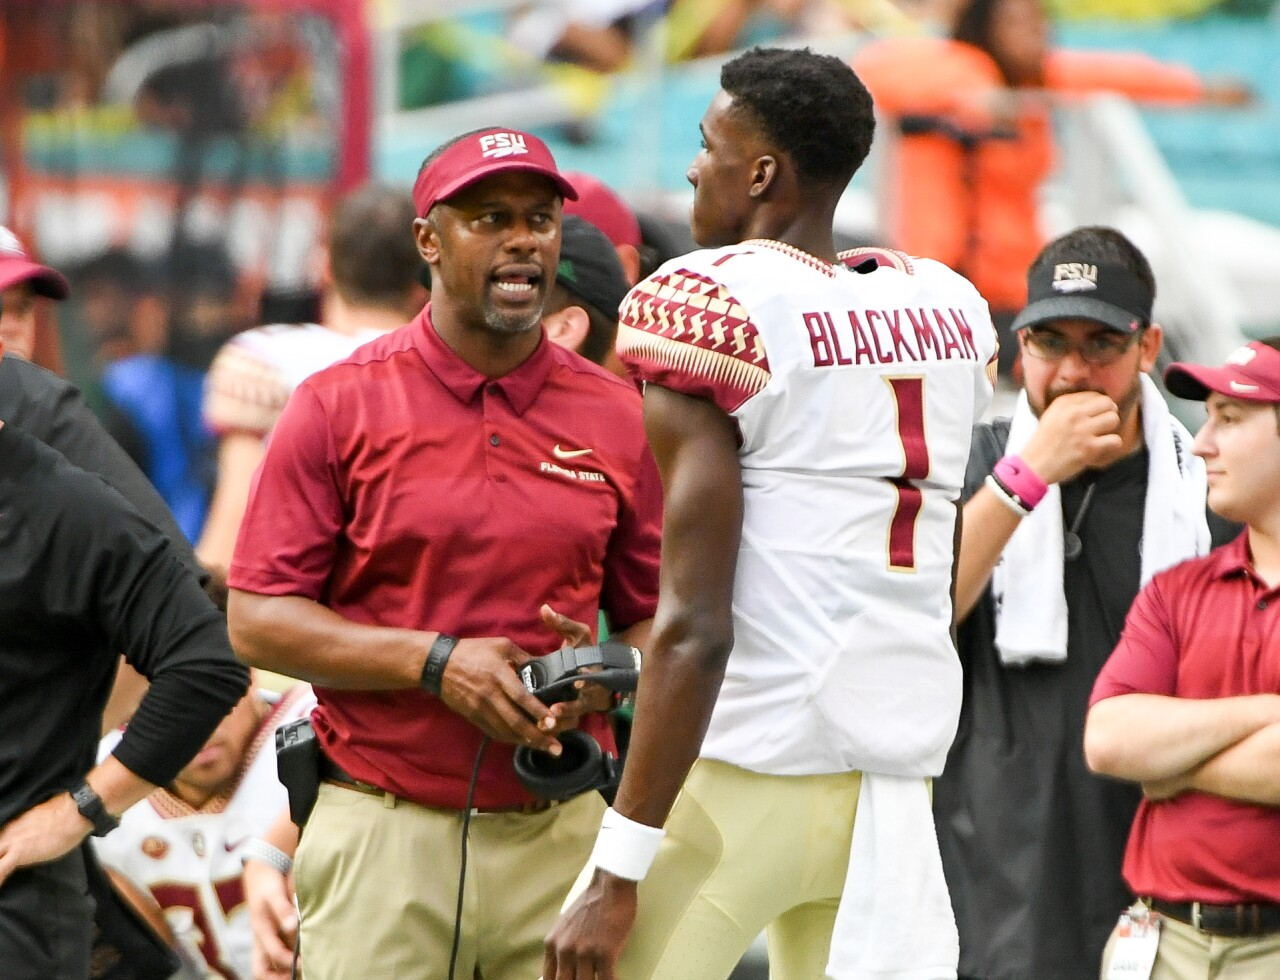 Florida State Seminoles head coach Willie Taggart speaks to QB James Blackman on sideline vs. Miami Hurricanes in 2018